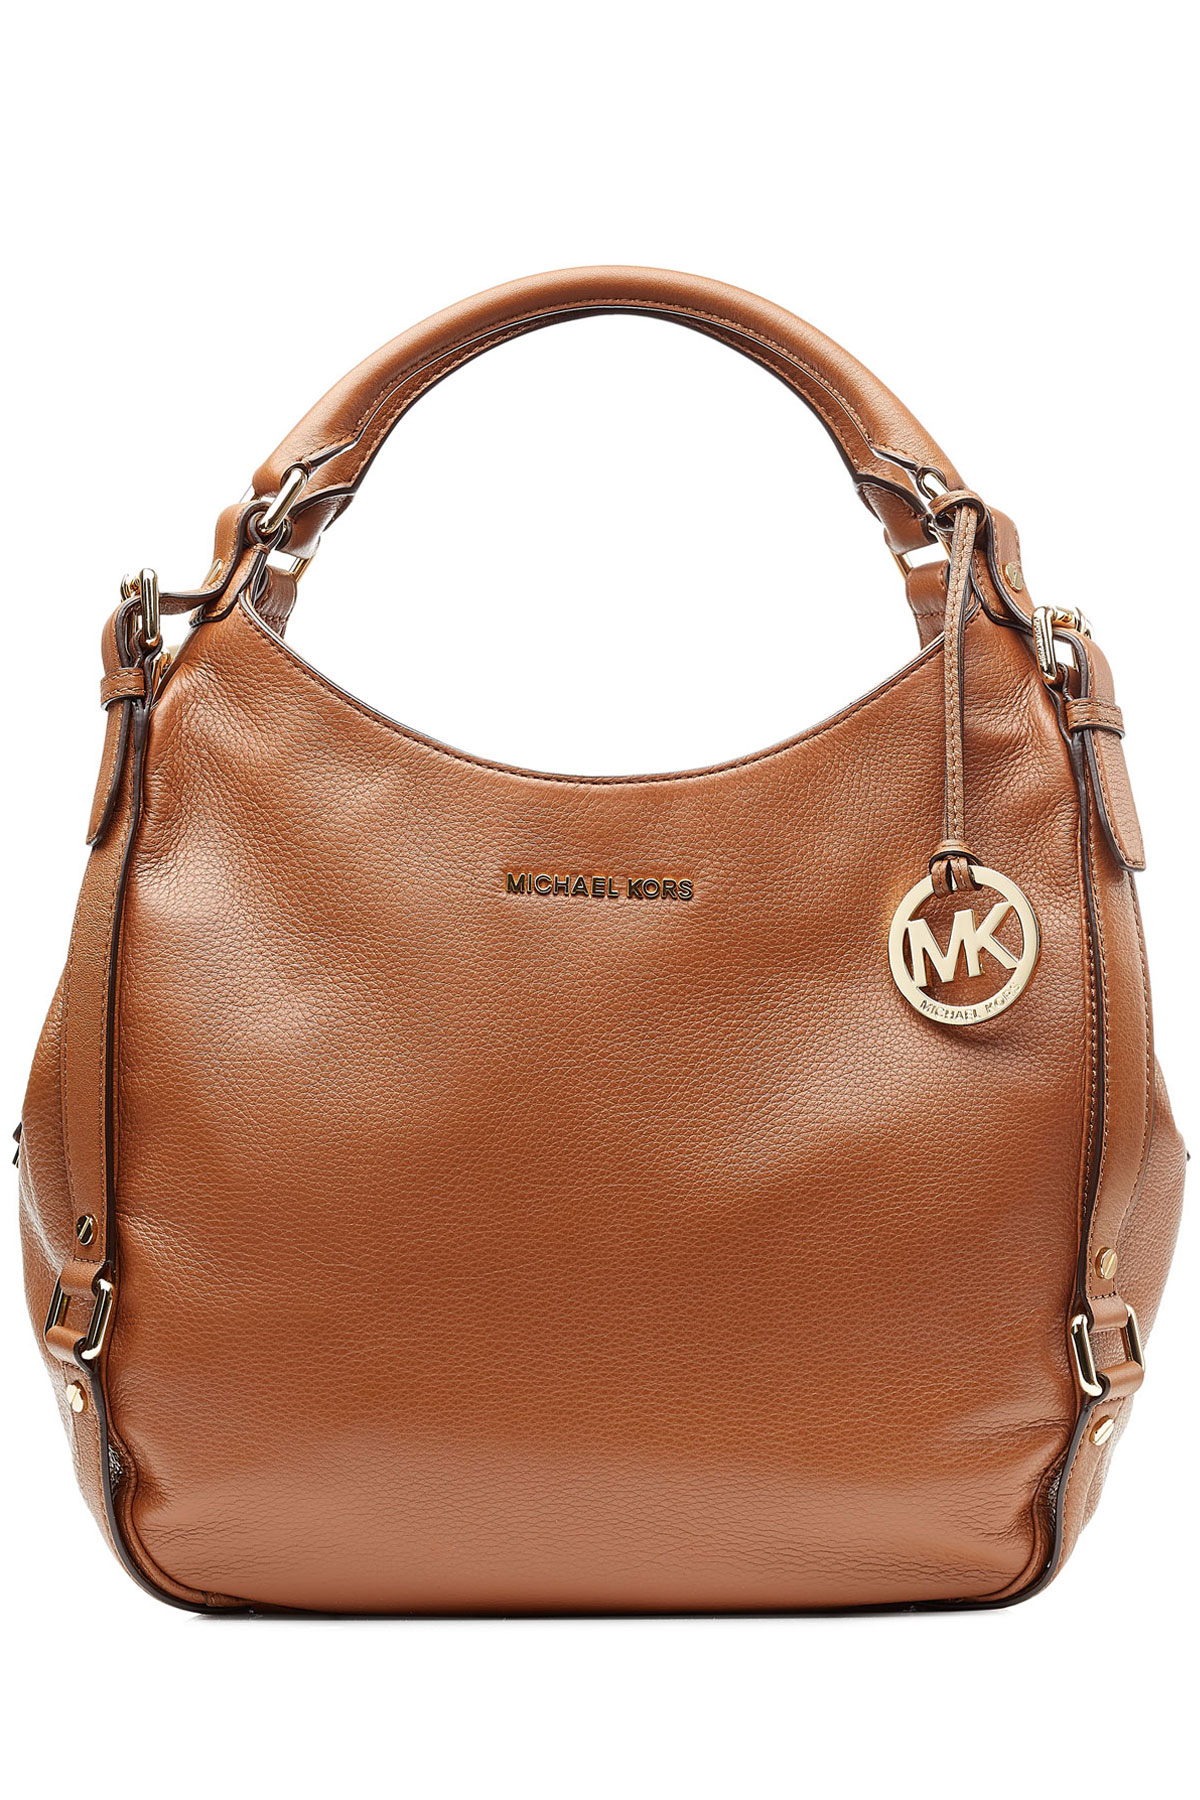 a6d22d23ff48 shopping lyst michael michael kors leather bedford hobo bag in brown 97746  3ebdb